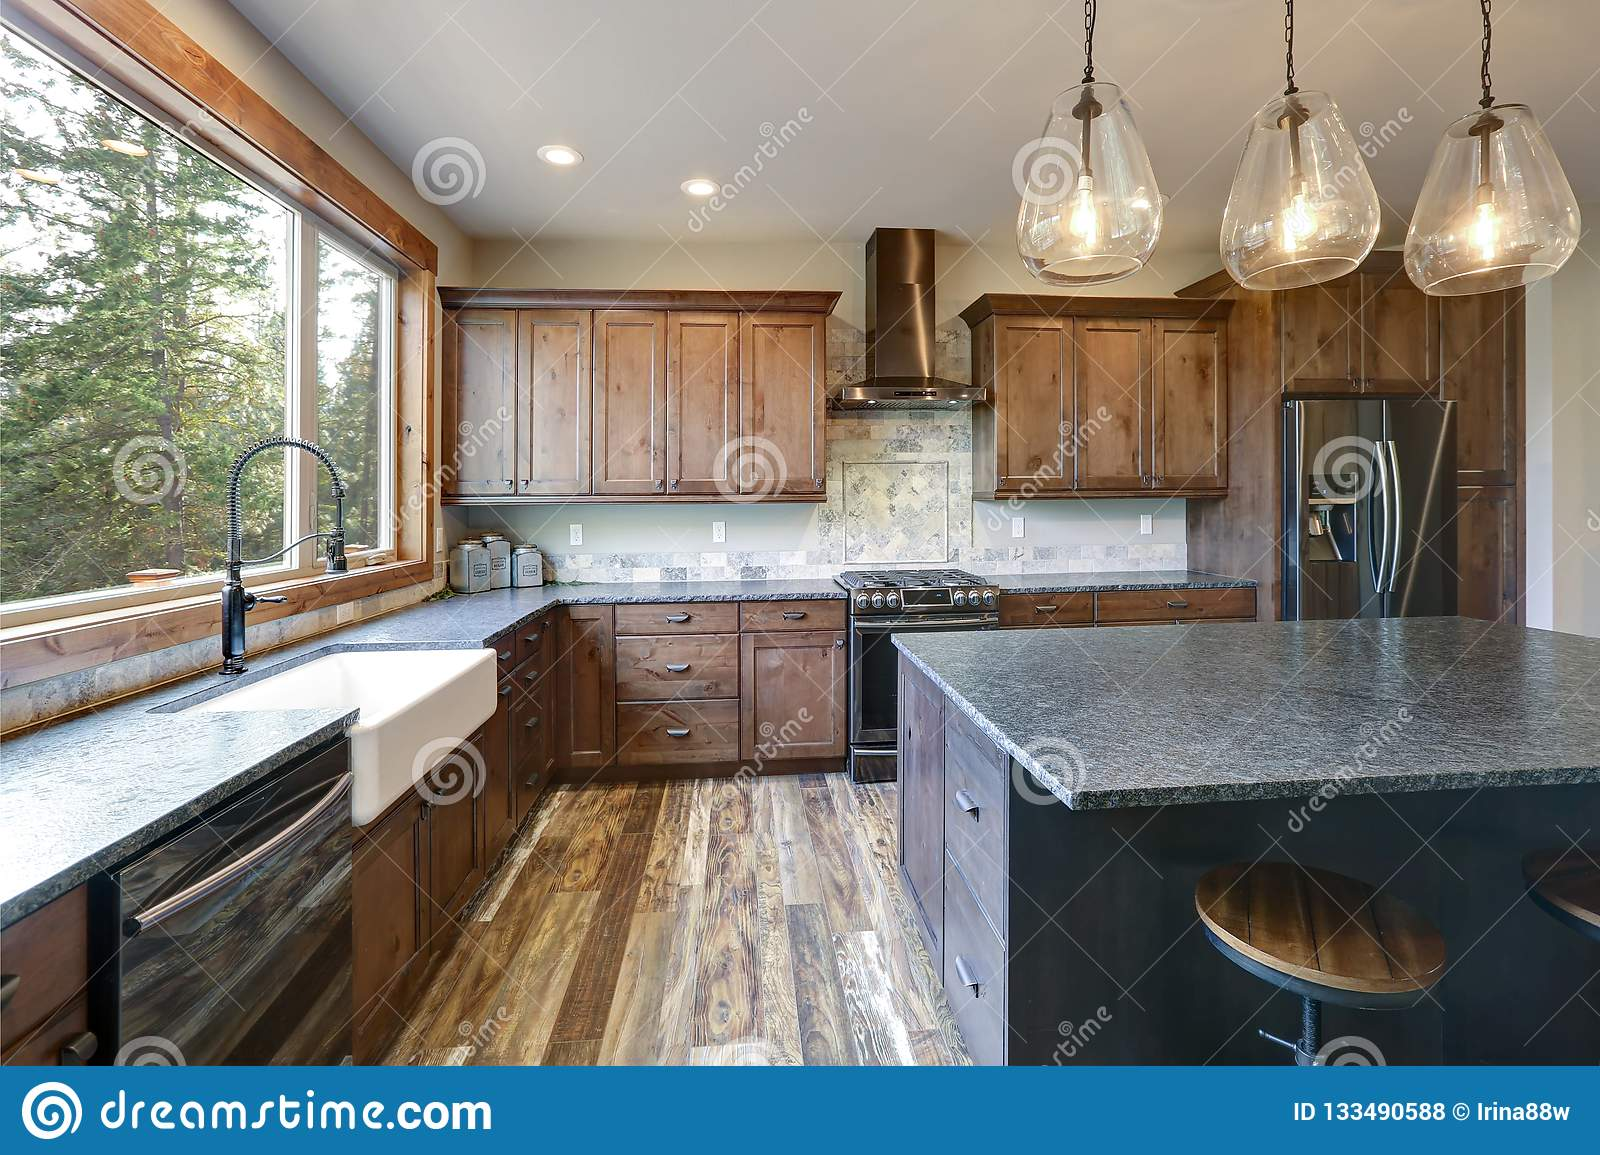 Luxurious Open Plan Kitchen Design With Large Center Island Stock Photo Image Of Counter Country 133490588